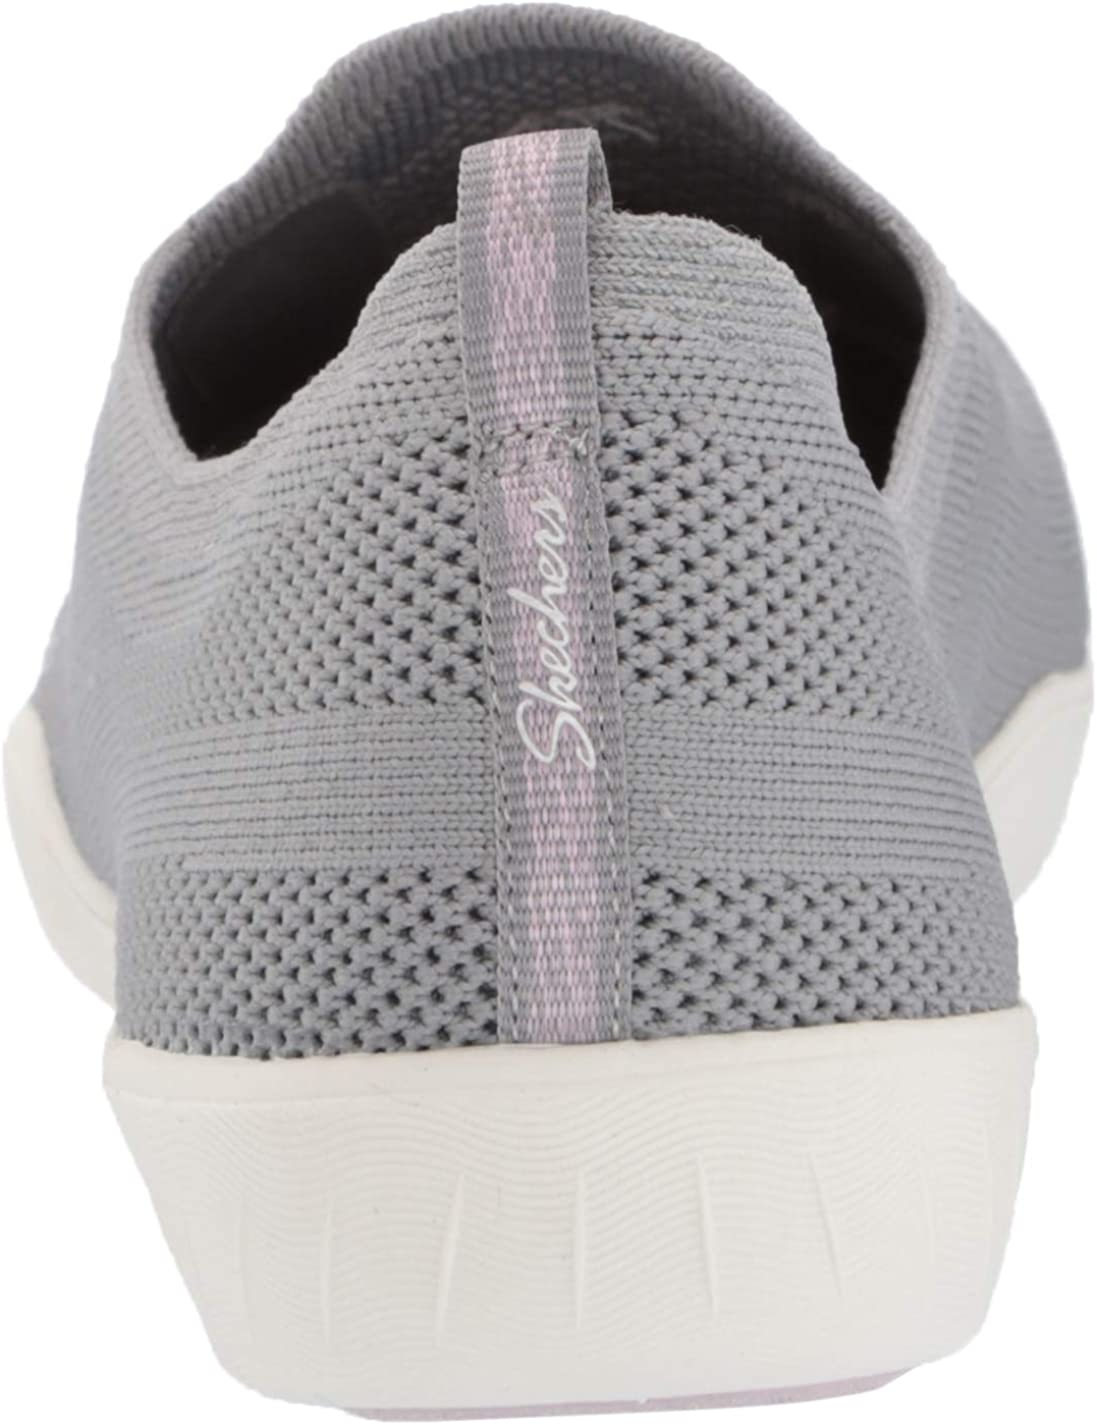 Skechers Newbury St - Every Angle, Baskets Femme Gray